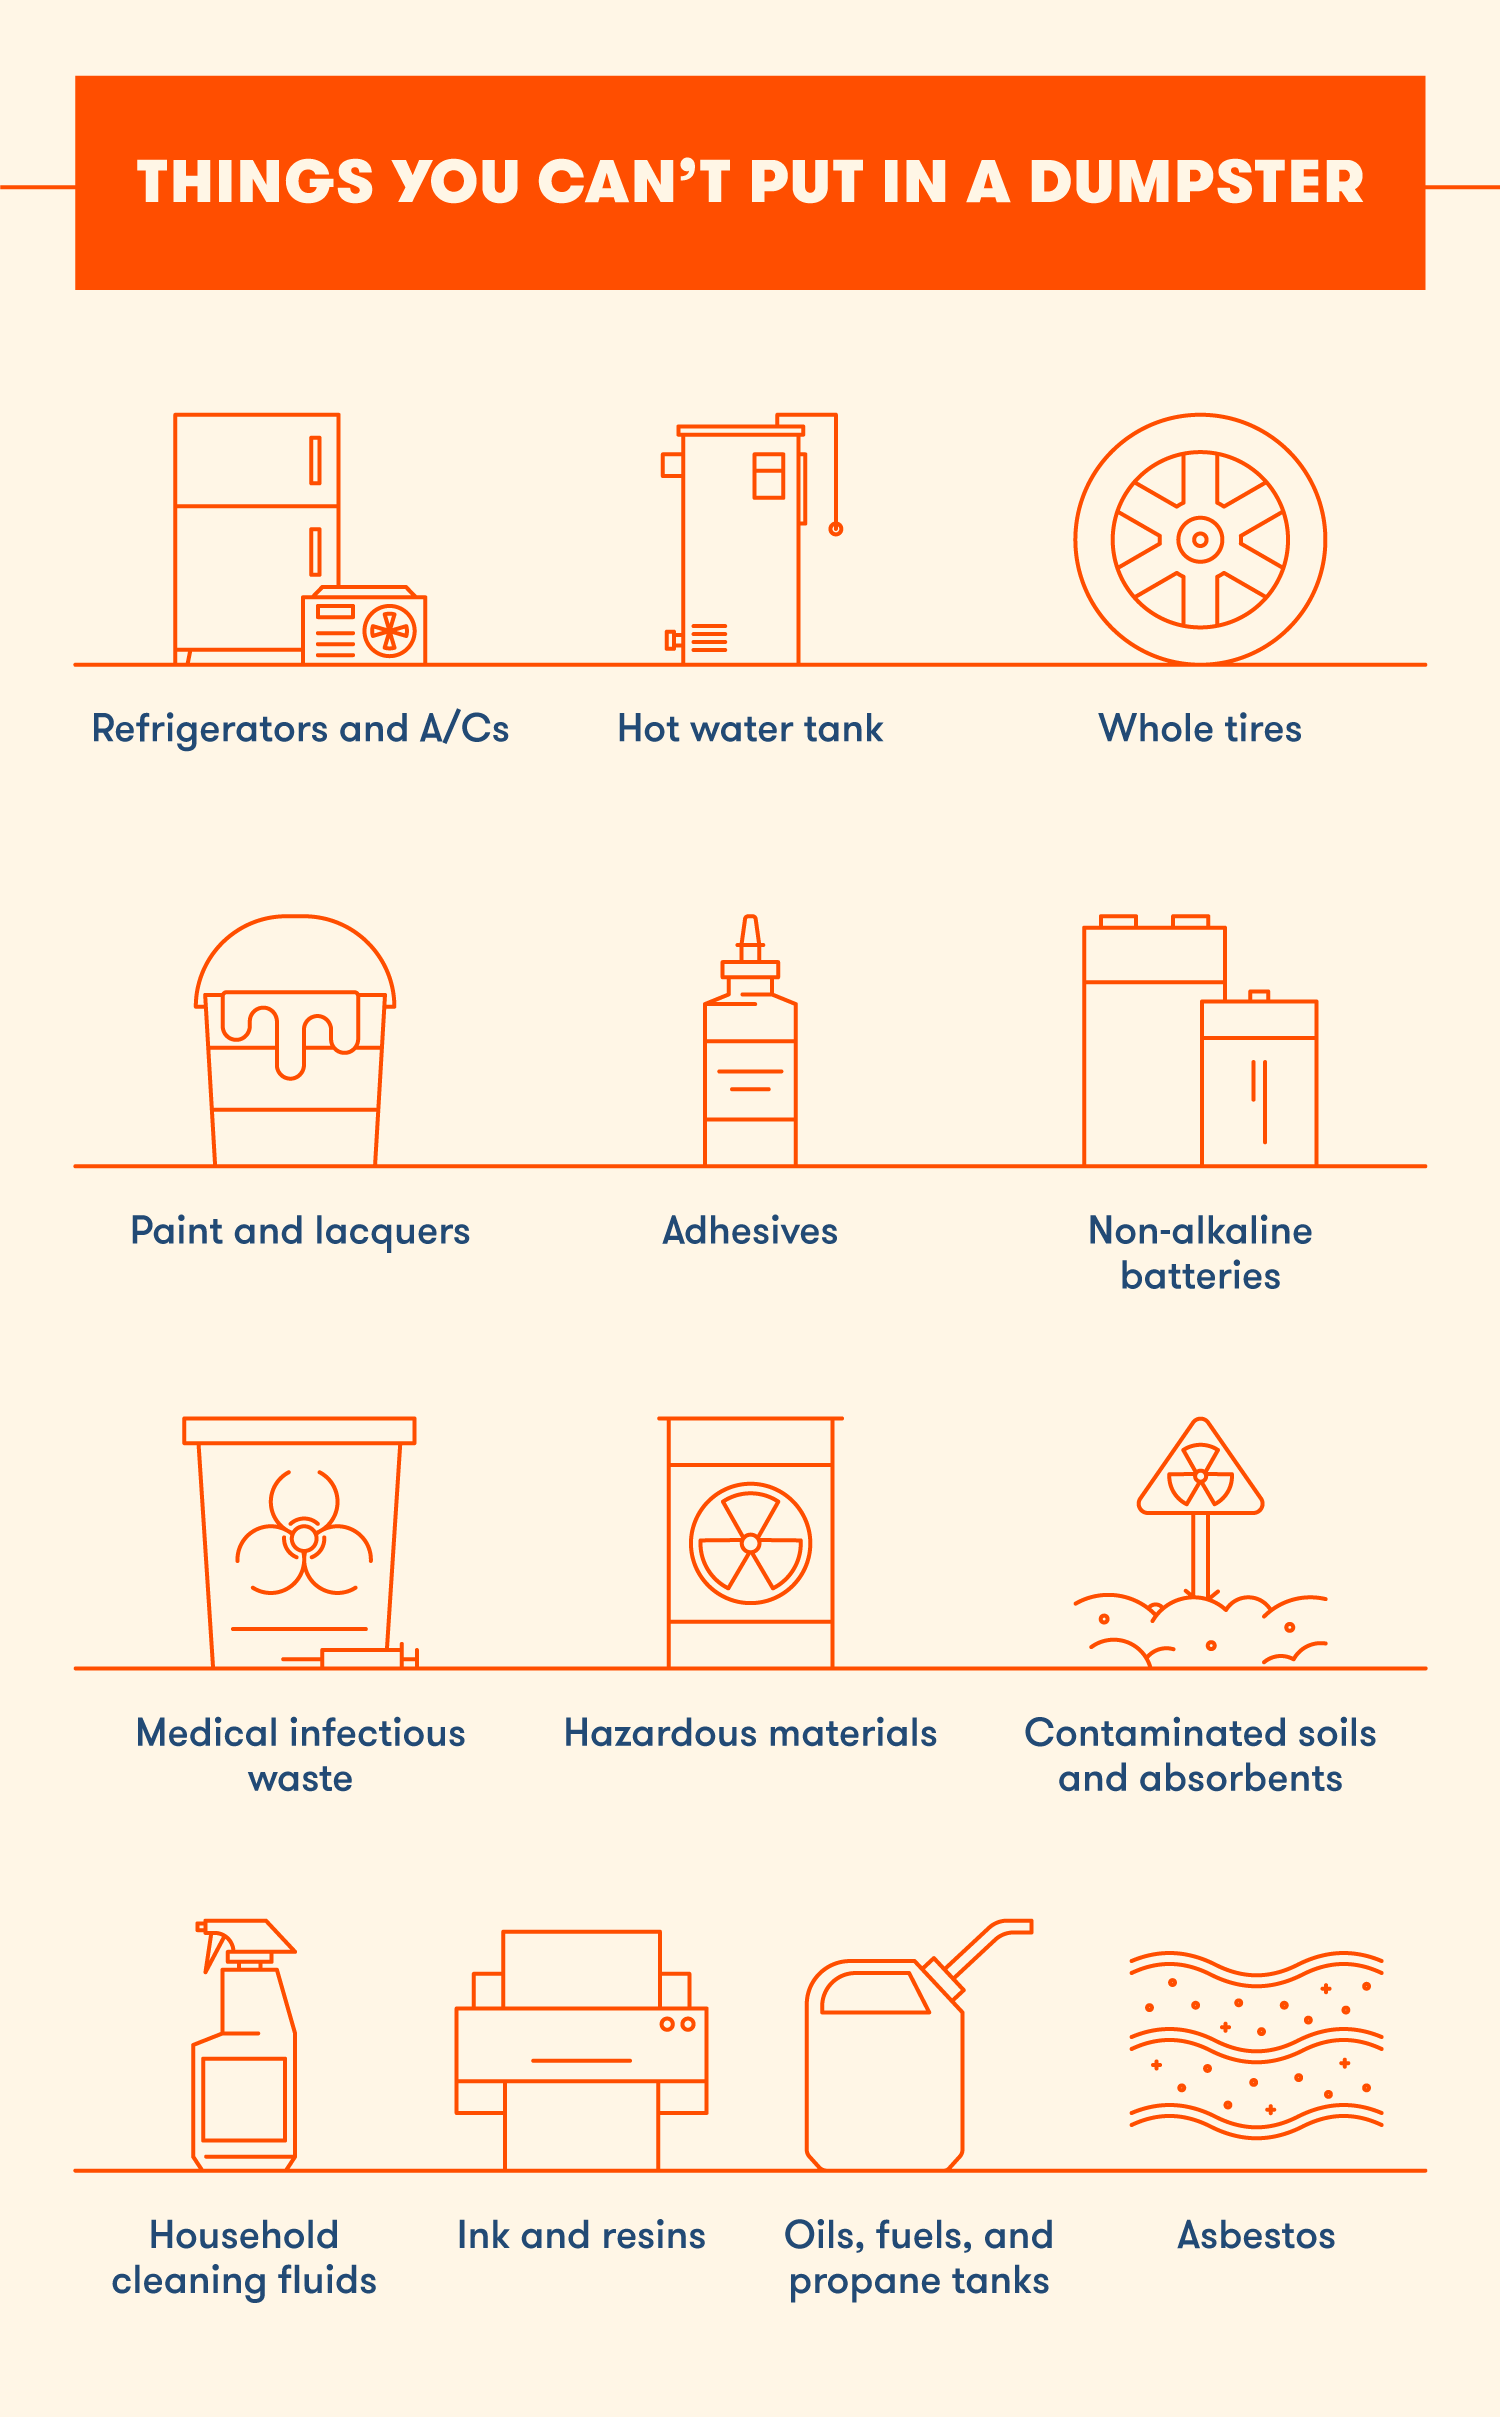 Graphic illustrating the items that should not be disposed of in a dumpster